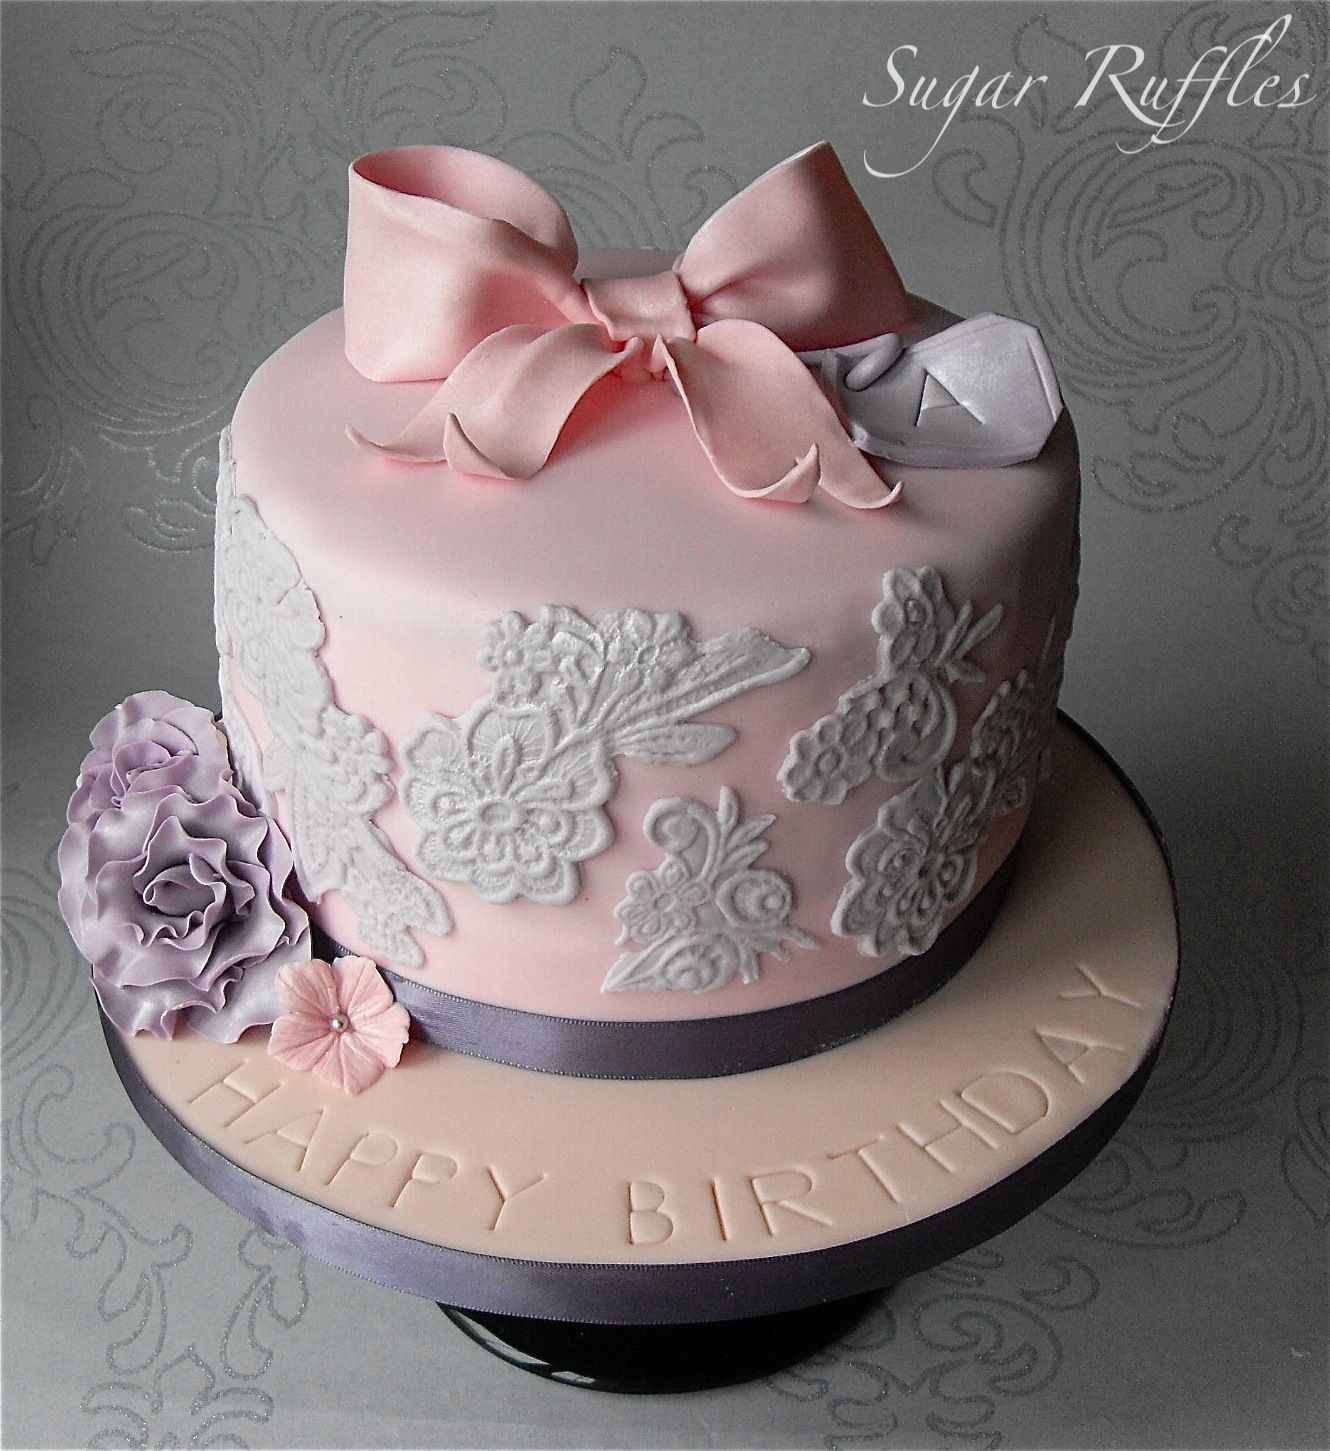 Sugar Ruffles, Elegant Wedding Cakes. Barrow In Furness And The Lake District, Cumbria: Birthday